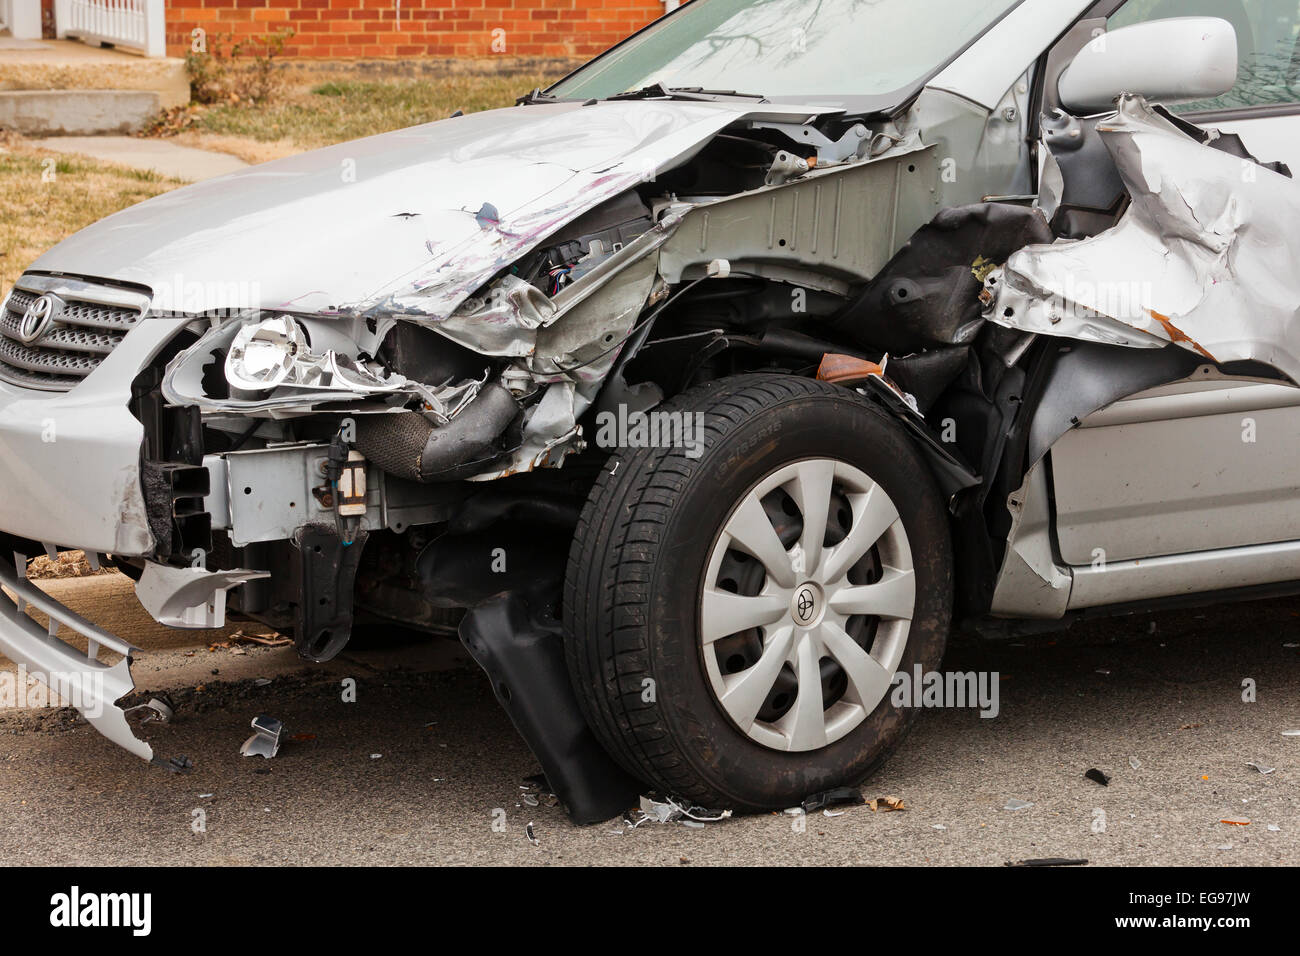 Volkswagen sedan with front end accident damage - USA - Stock Image